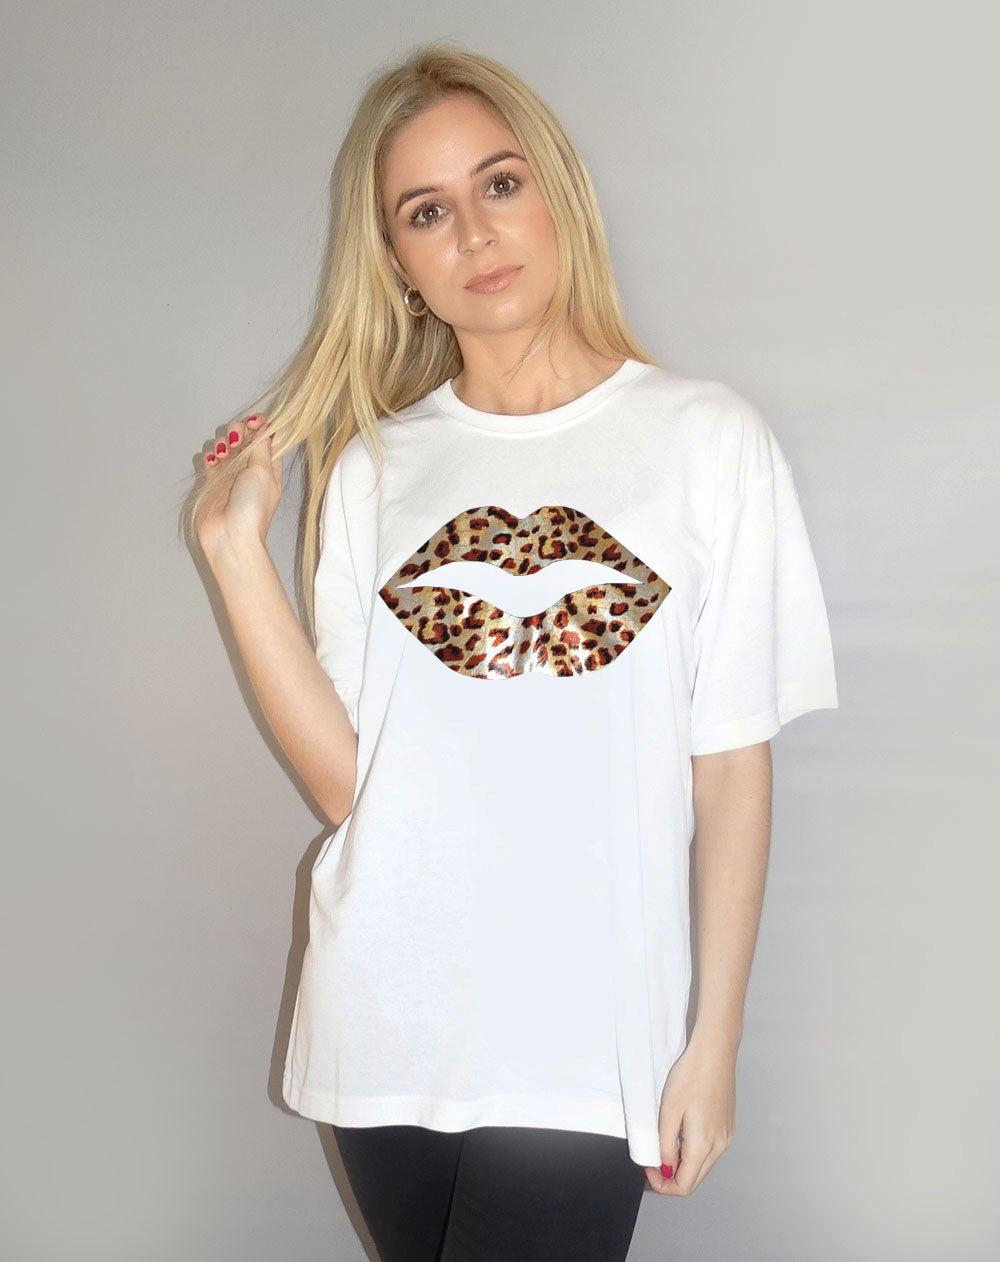 Gold Holographic Leopard Lip Tshirt in White